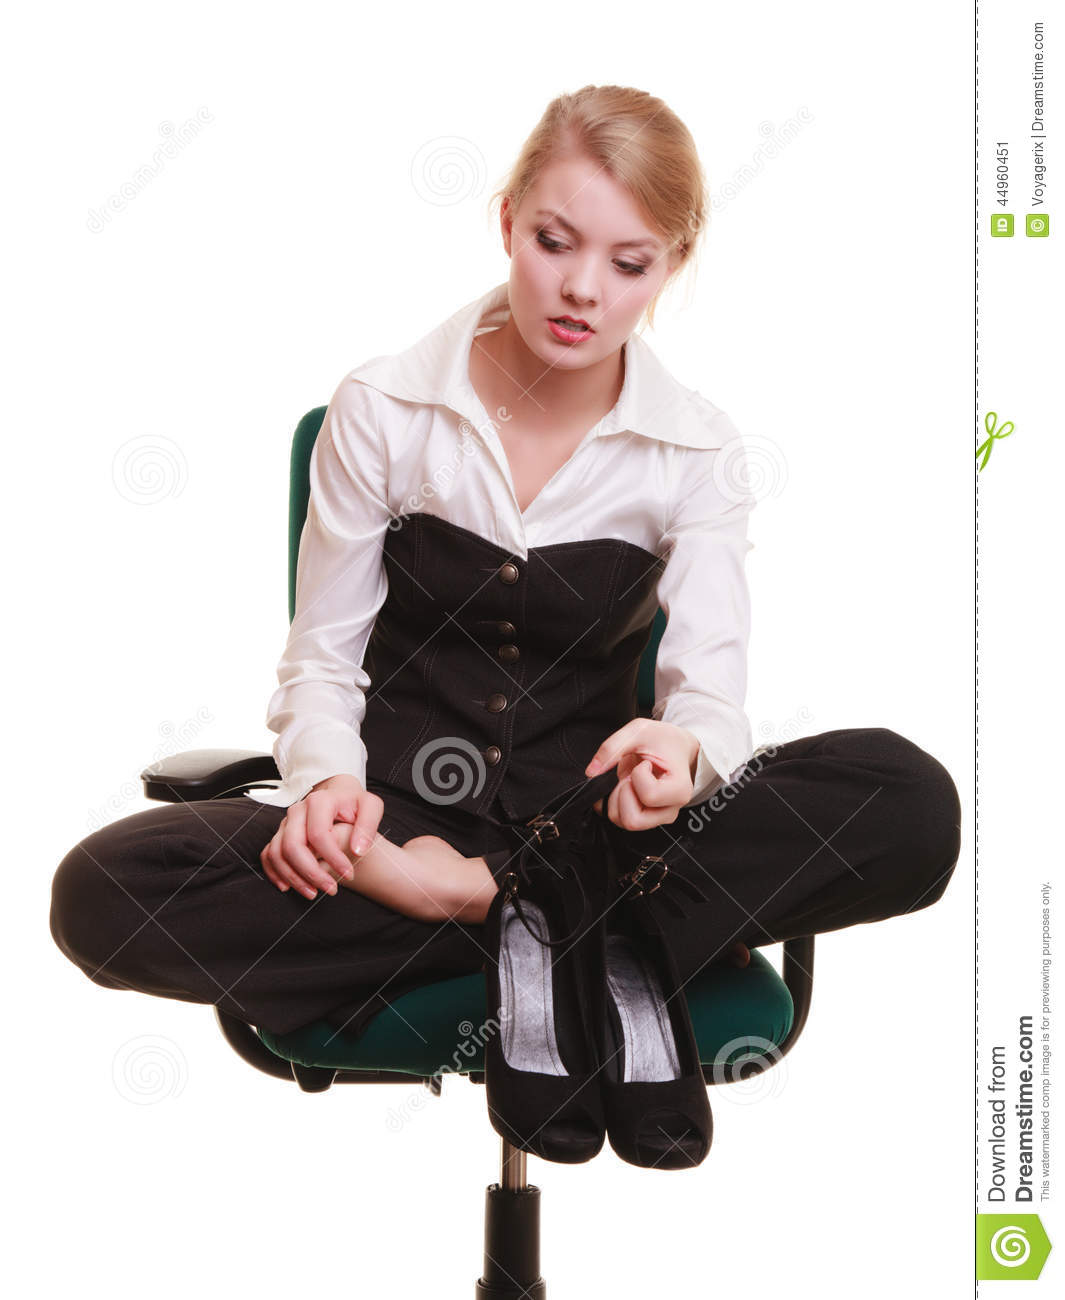 office chair with leg rest thrive kennedy break from work. tired businesswoman pain stock photo - image: 44960451